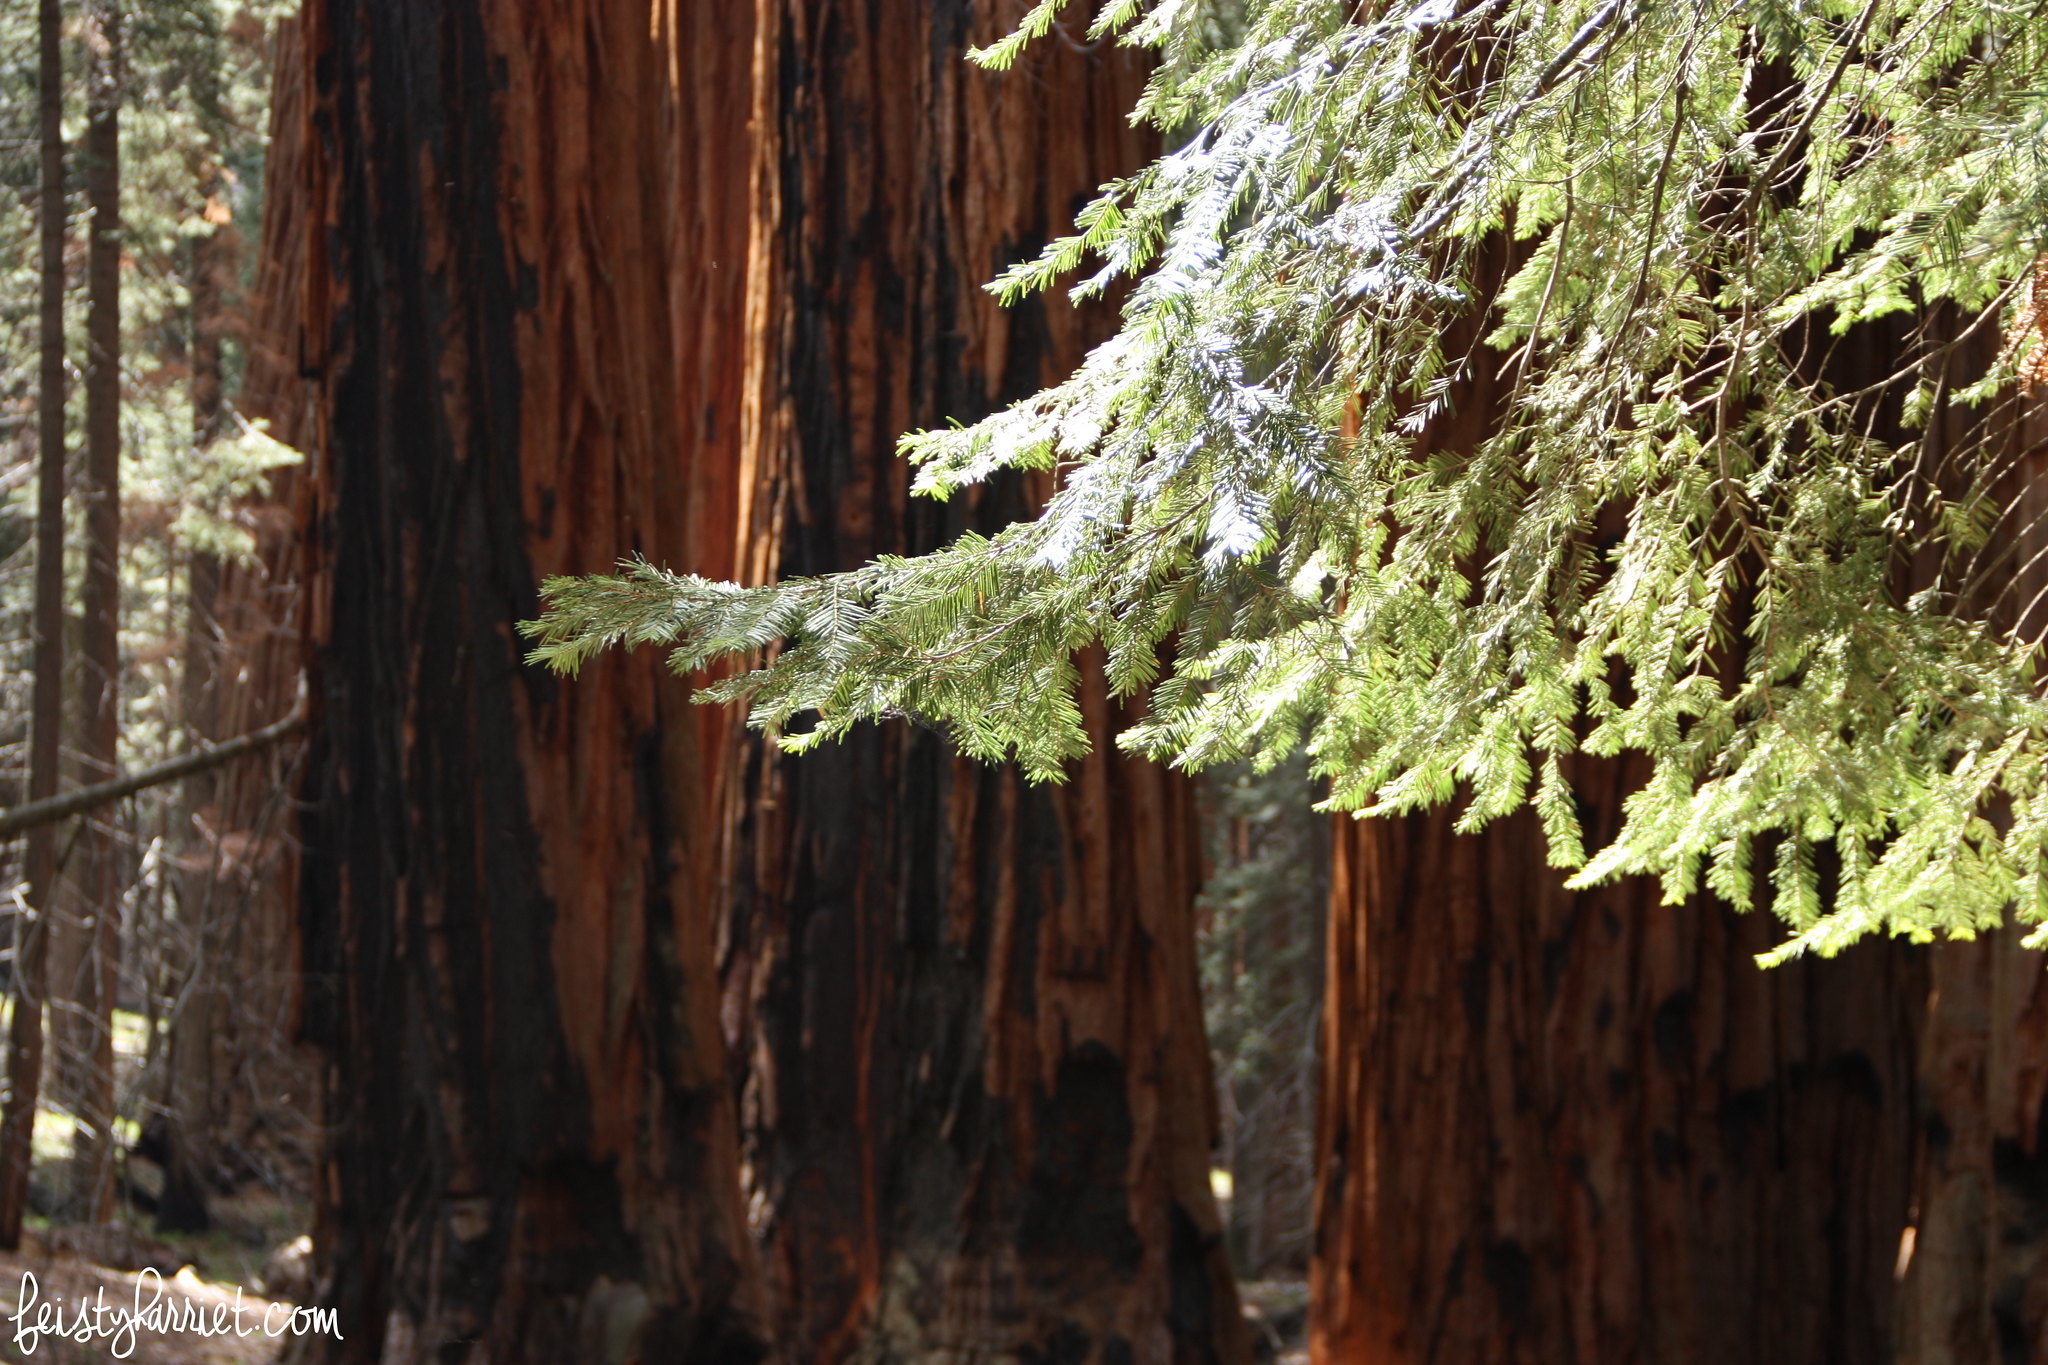 Sequoia National Park_feistyharriet_May 2016 (6)